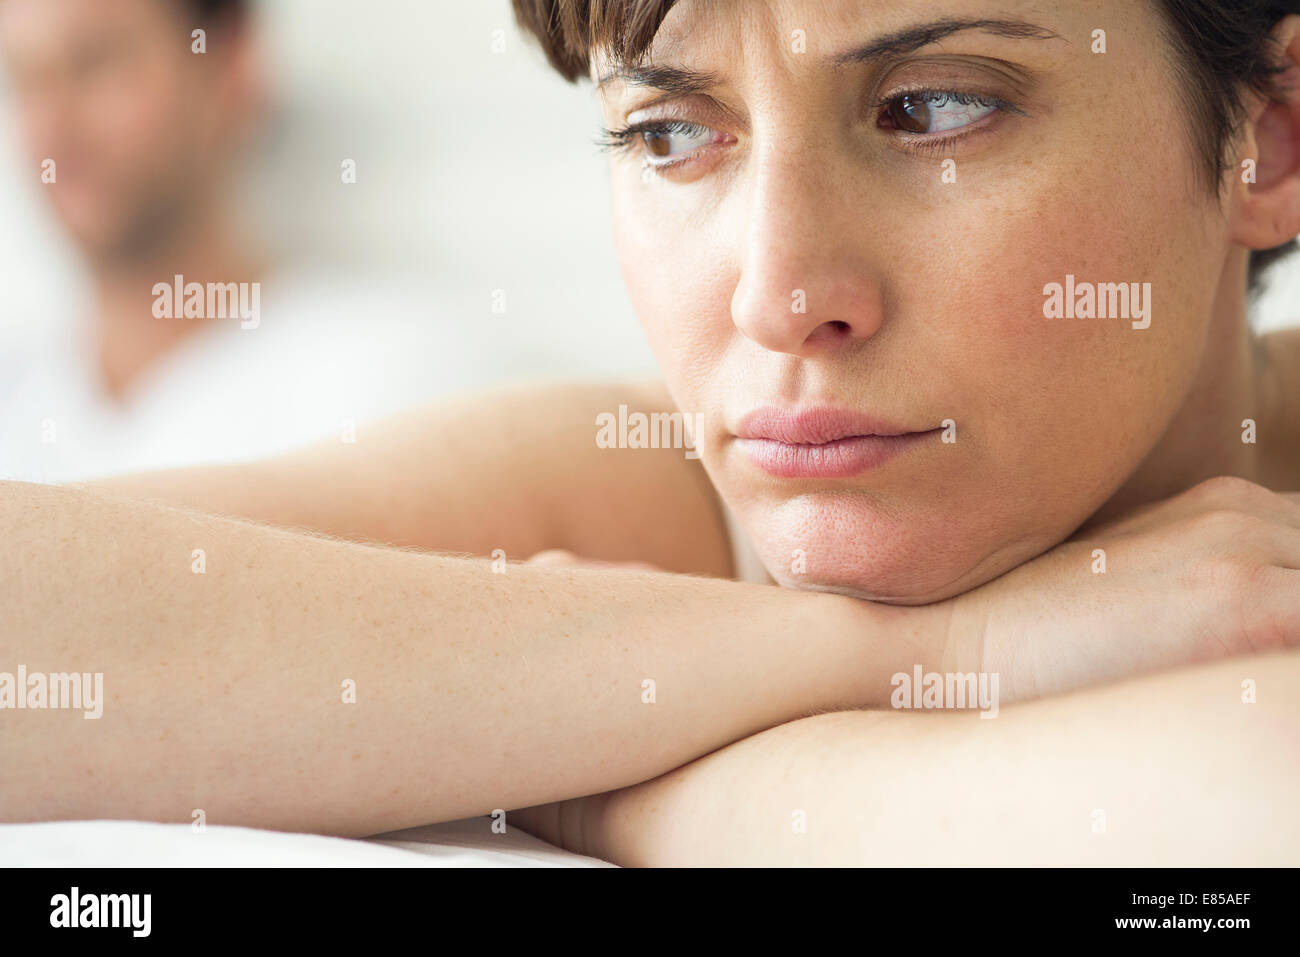 Woman angry and resentful following dispute with husband - Stock Image